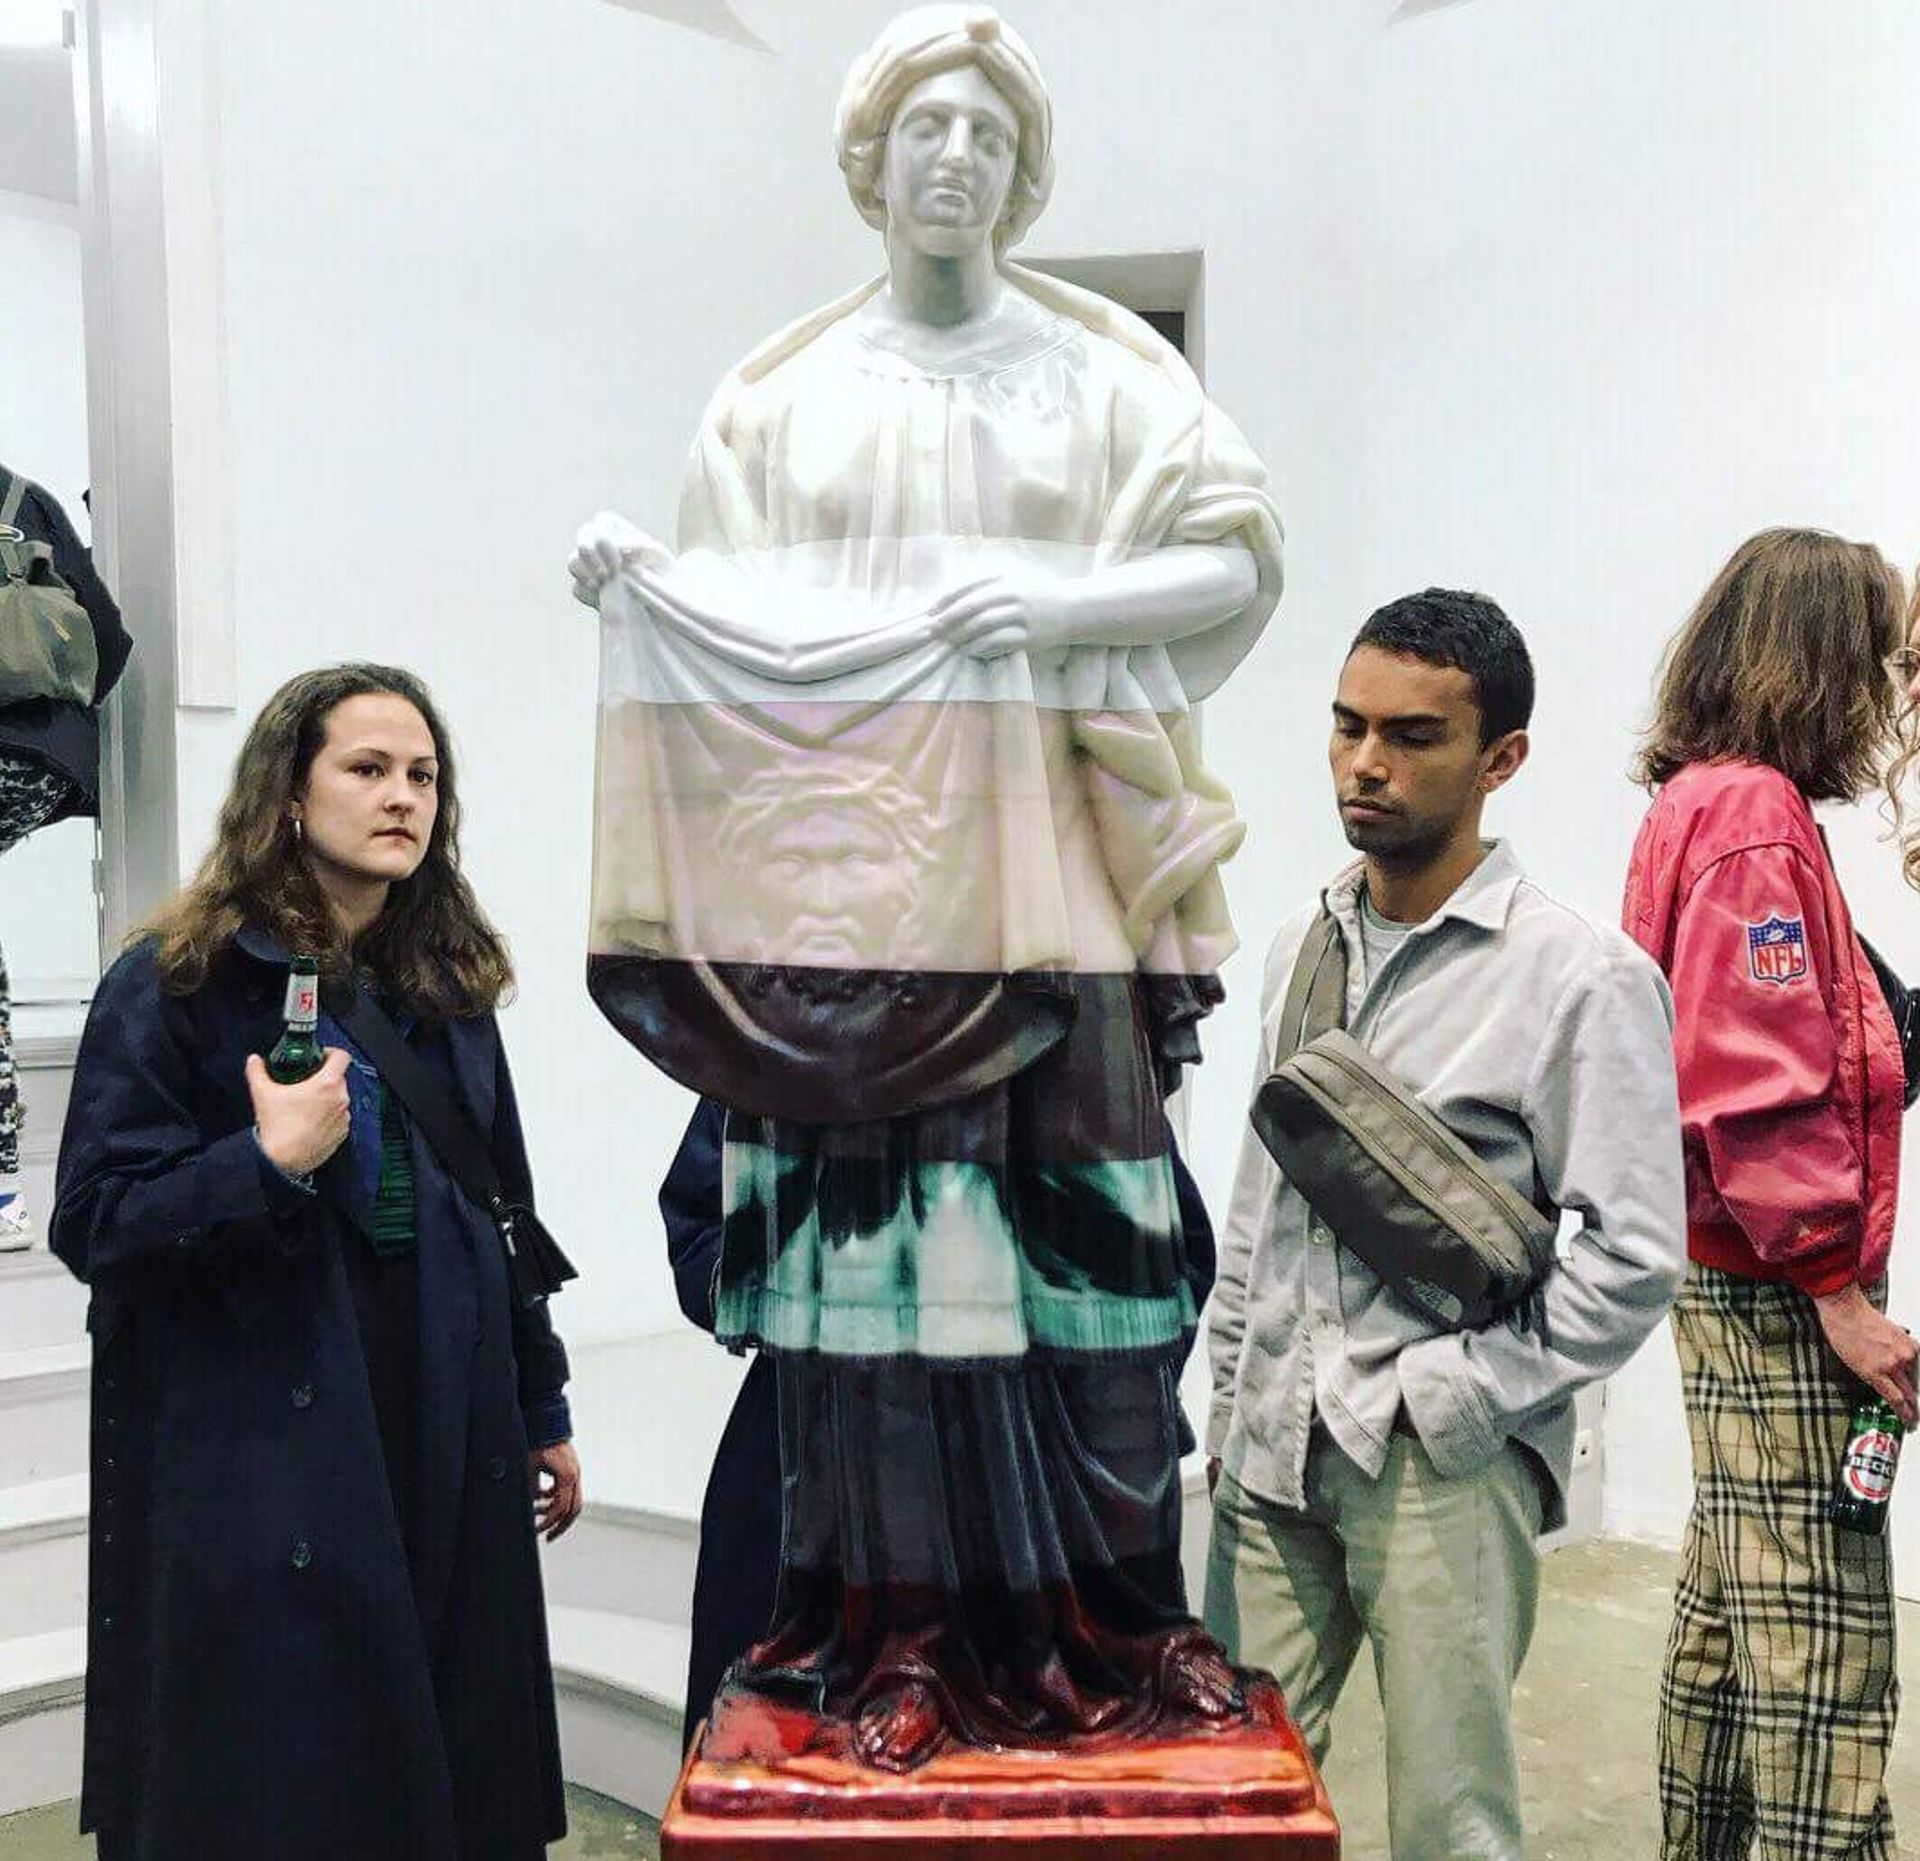 Visitors to Oliver Laric's exhibition at Tanya Leighton during Gallery Weekend Berlin Laurie Rojas